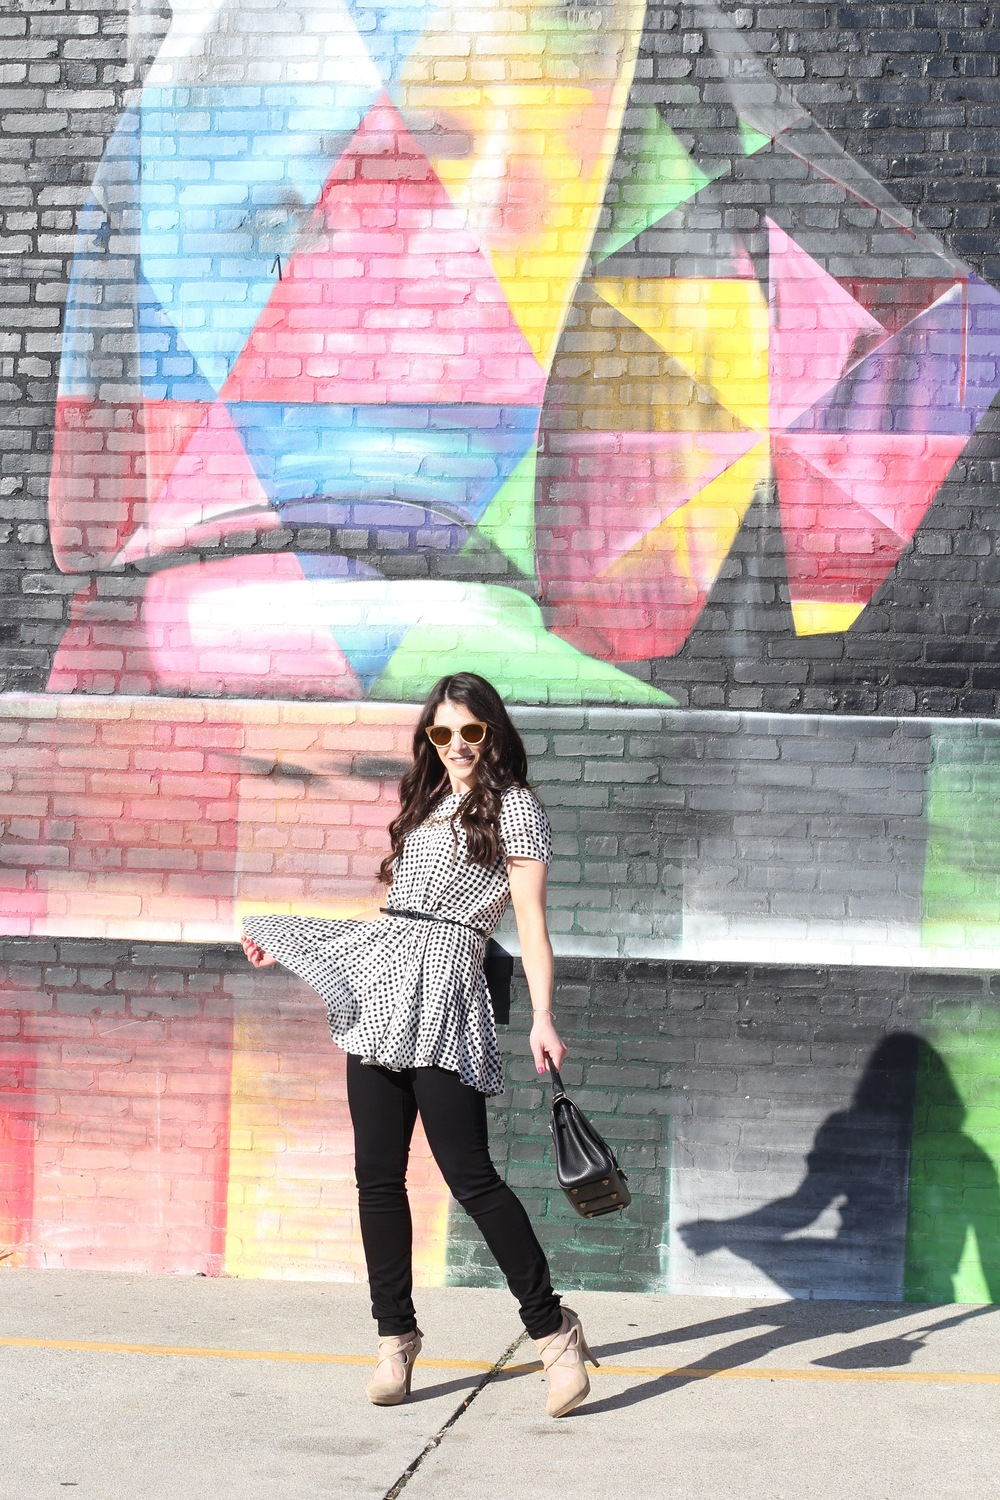 Fashion Blogger, Trench Coat with Ruffles, J Brand Skinny Jeans, Colorful Mural, Tory Burch Sunglasses, Vintage Dooney and Bourke Handbag, Gingham Tunic